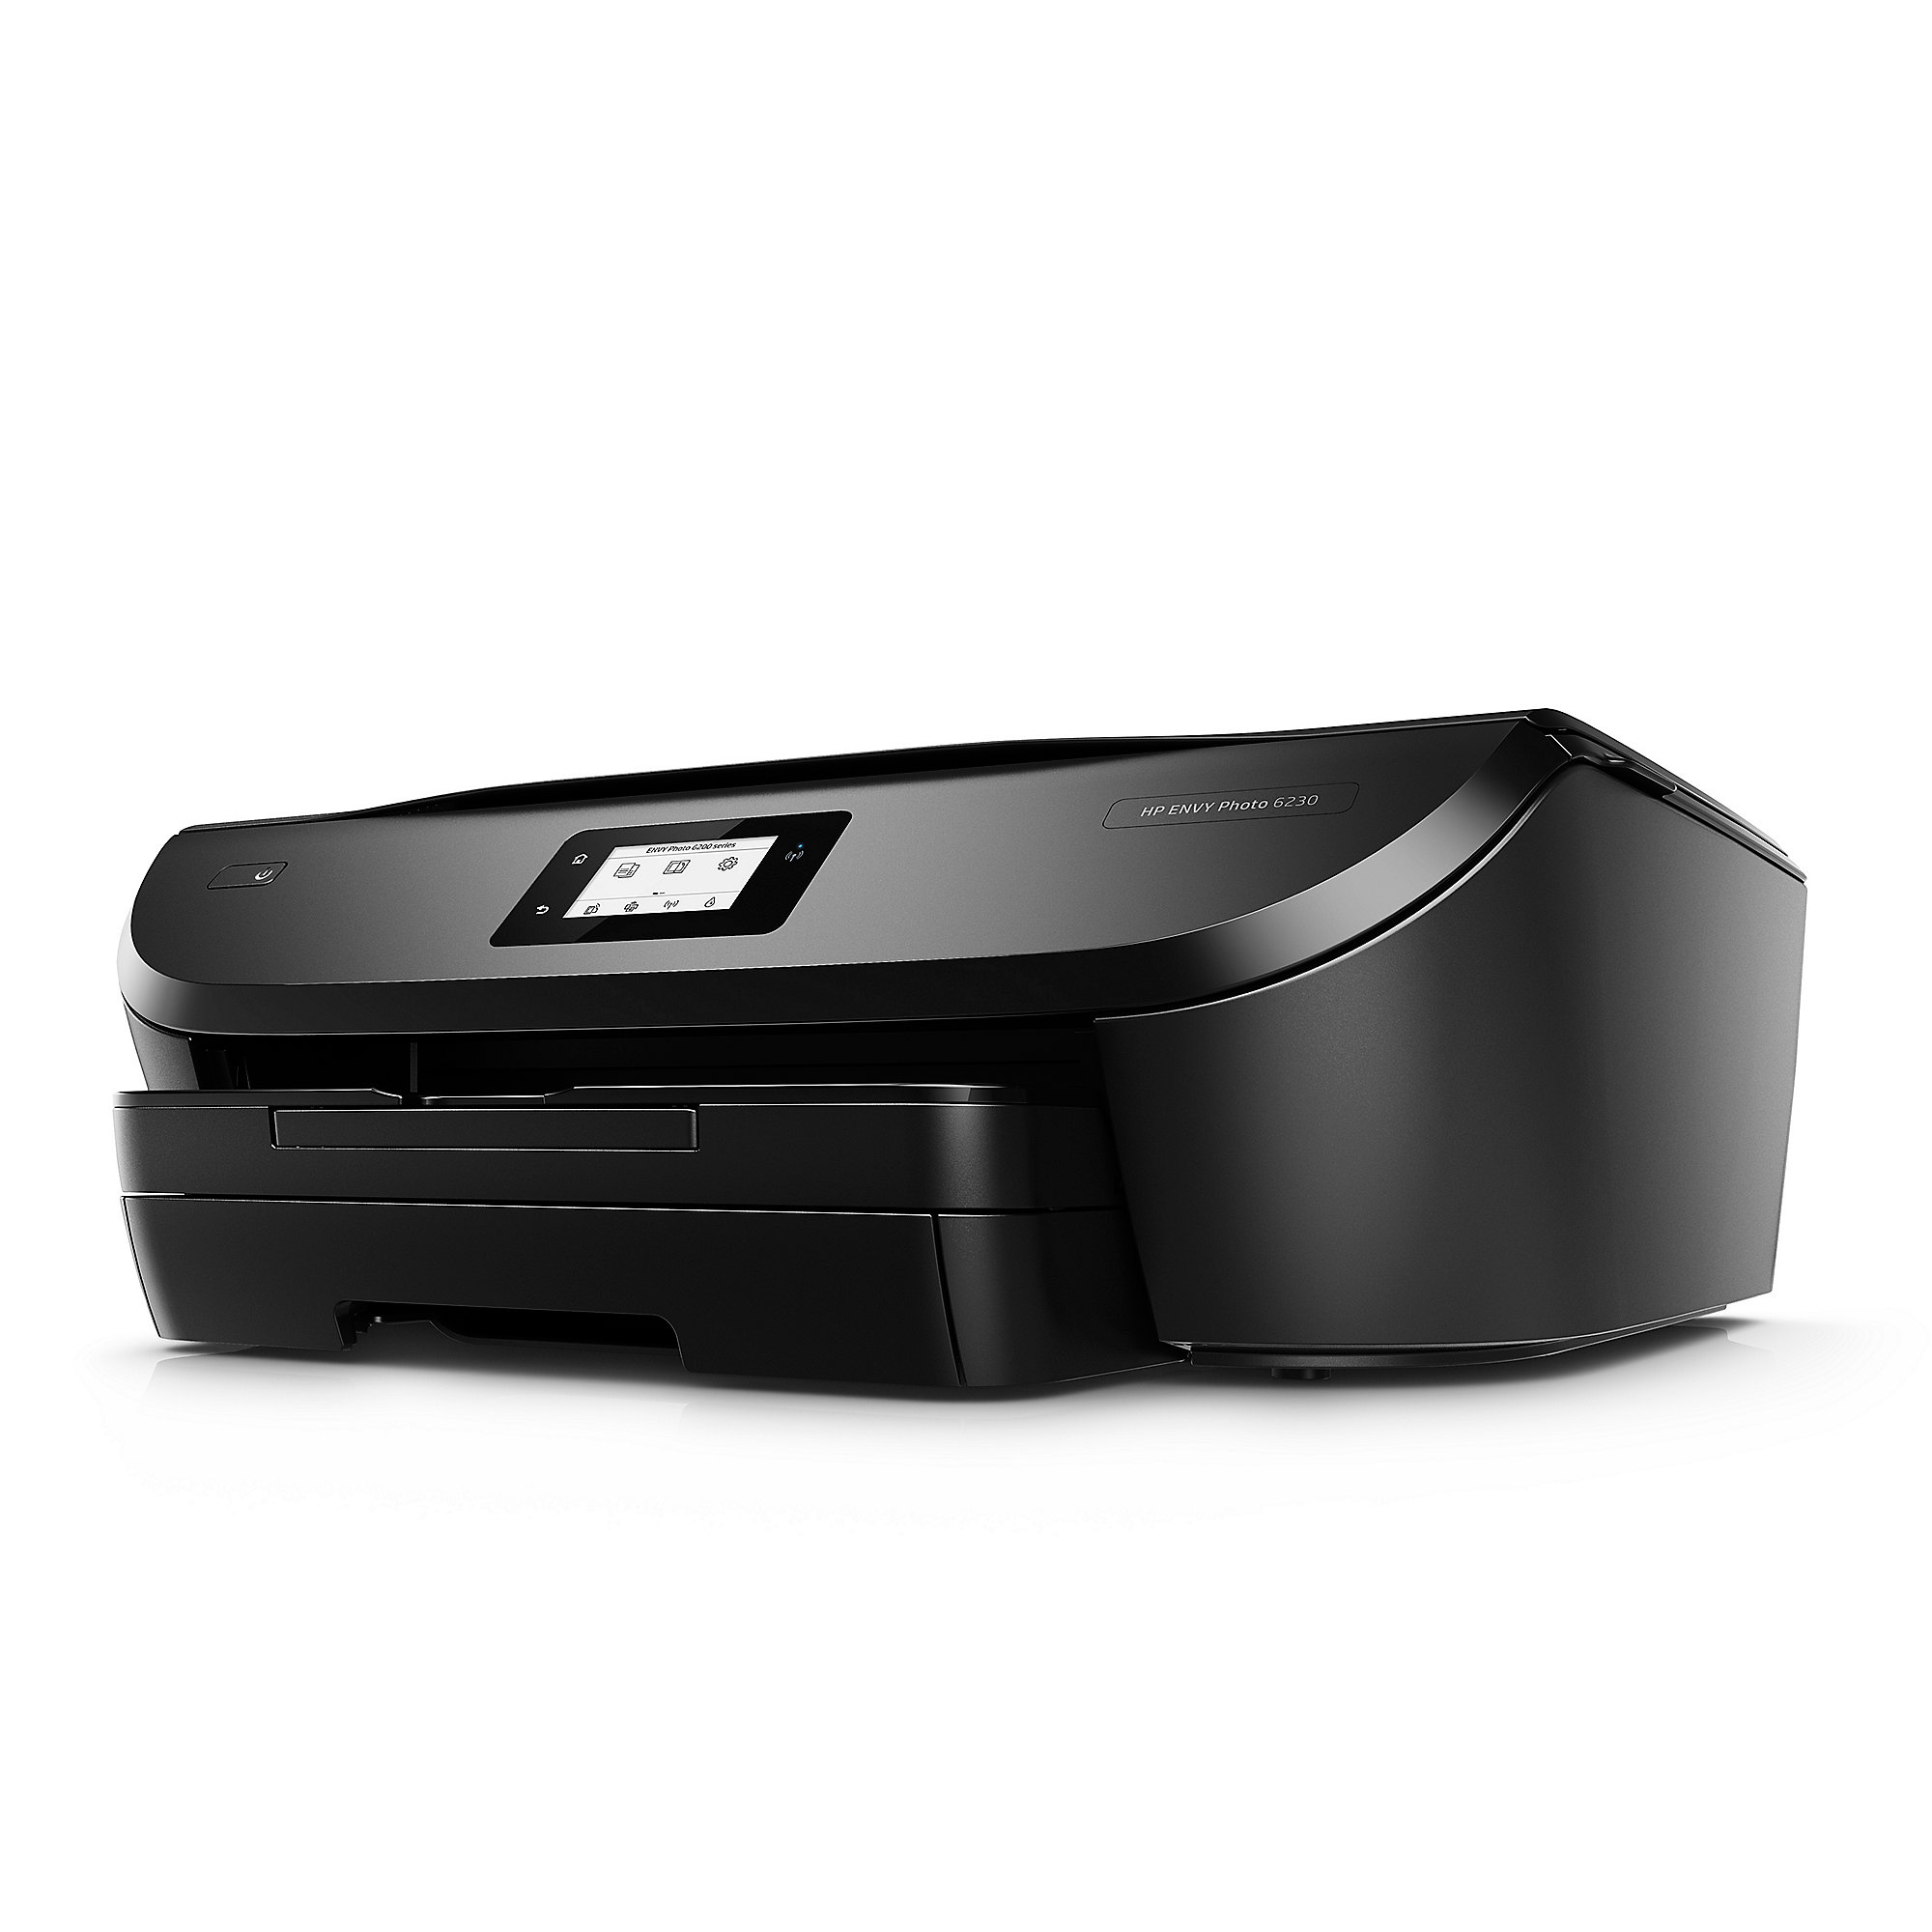 HP Envy Photo 6230 Tintenstrahl-Multifunktionsdrucker Scanner Kopierer WLAN